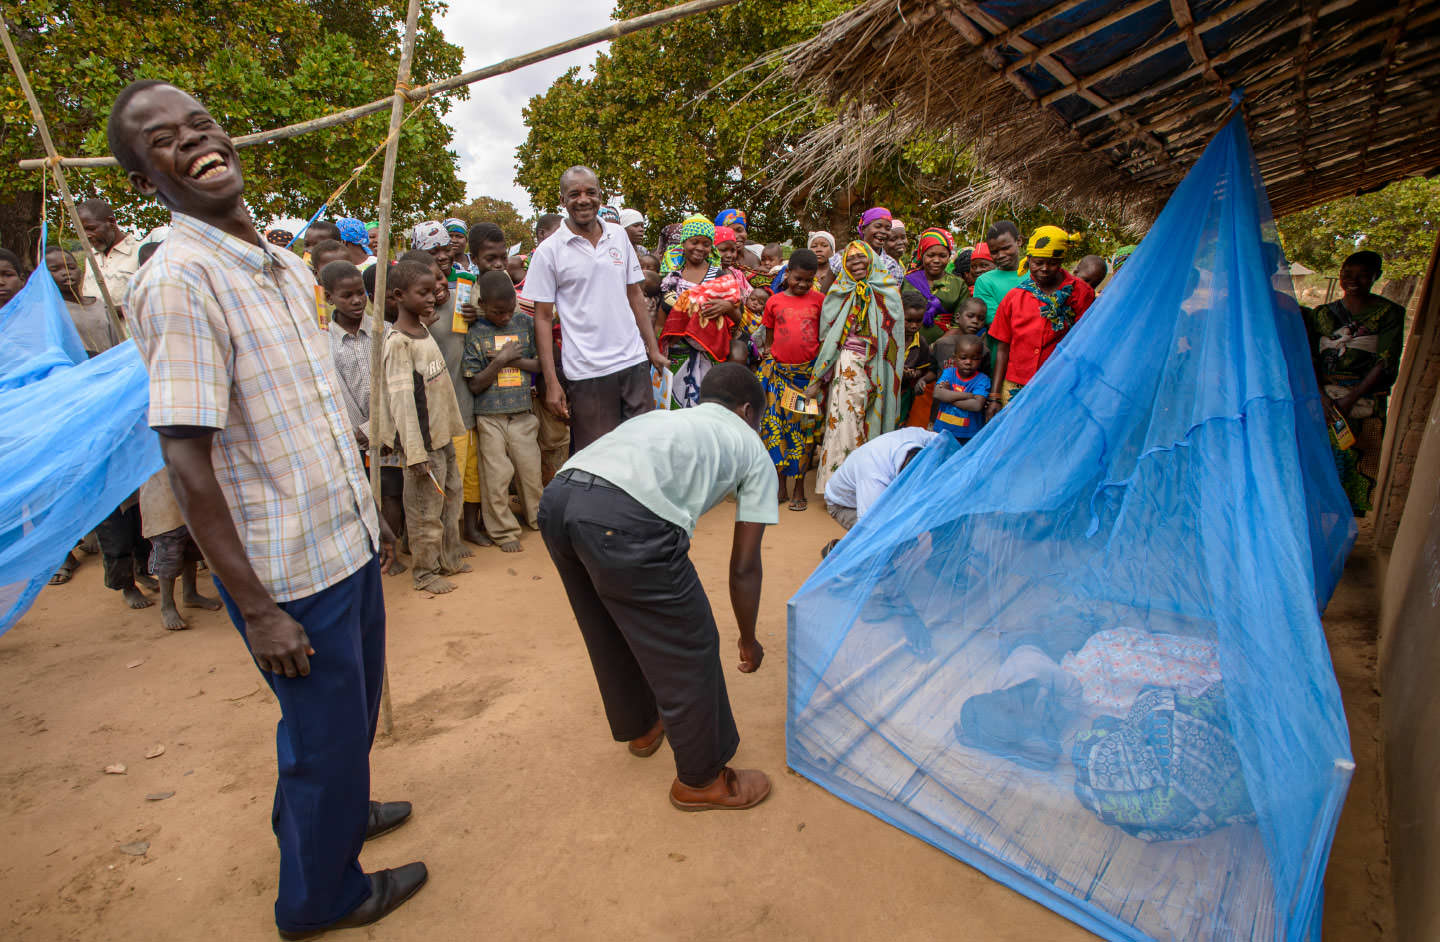 World Vision staff teach a nearby community to use nets properly.